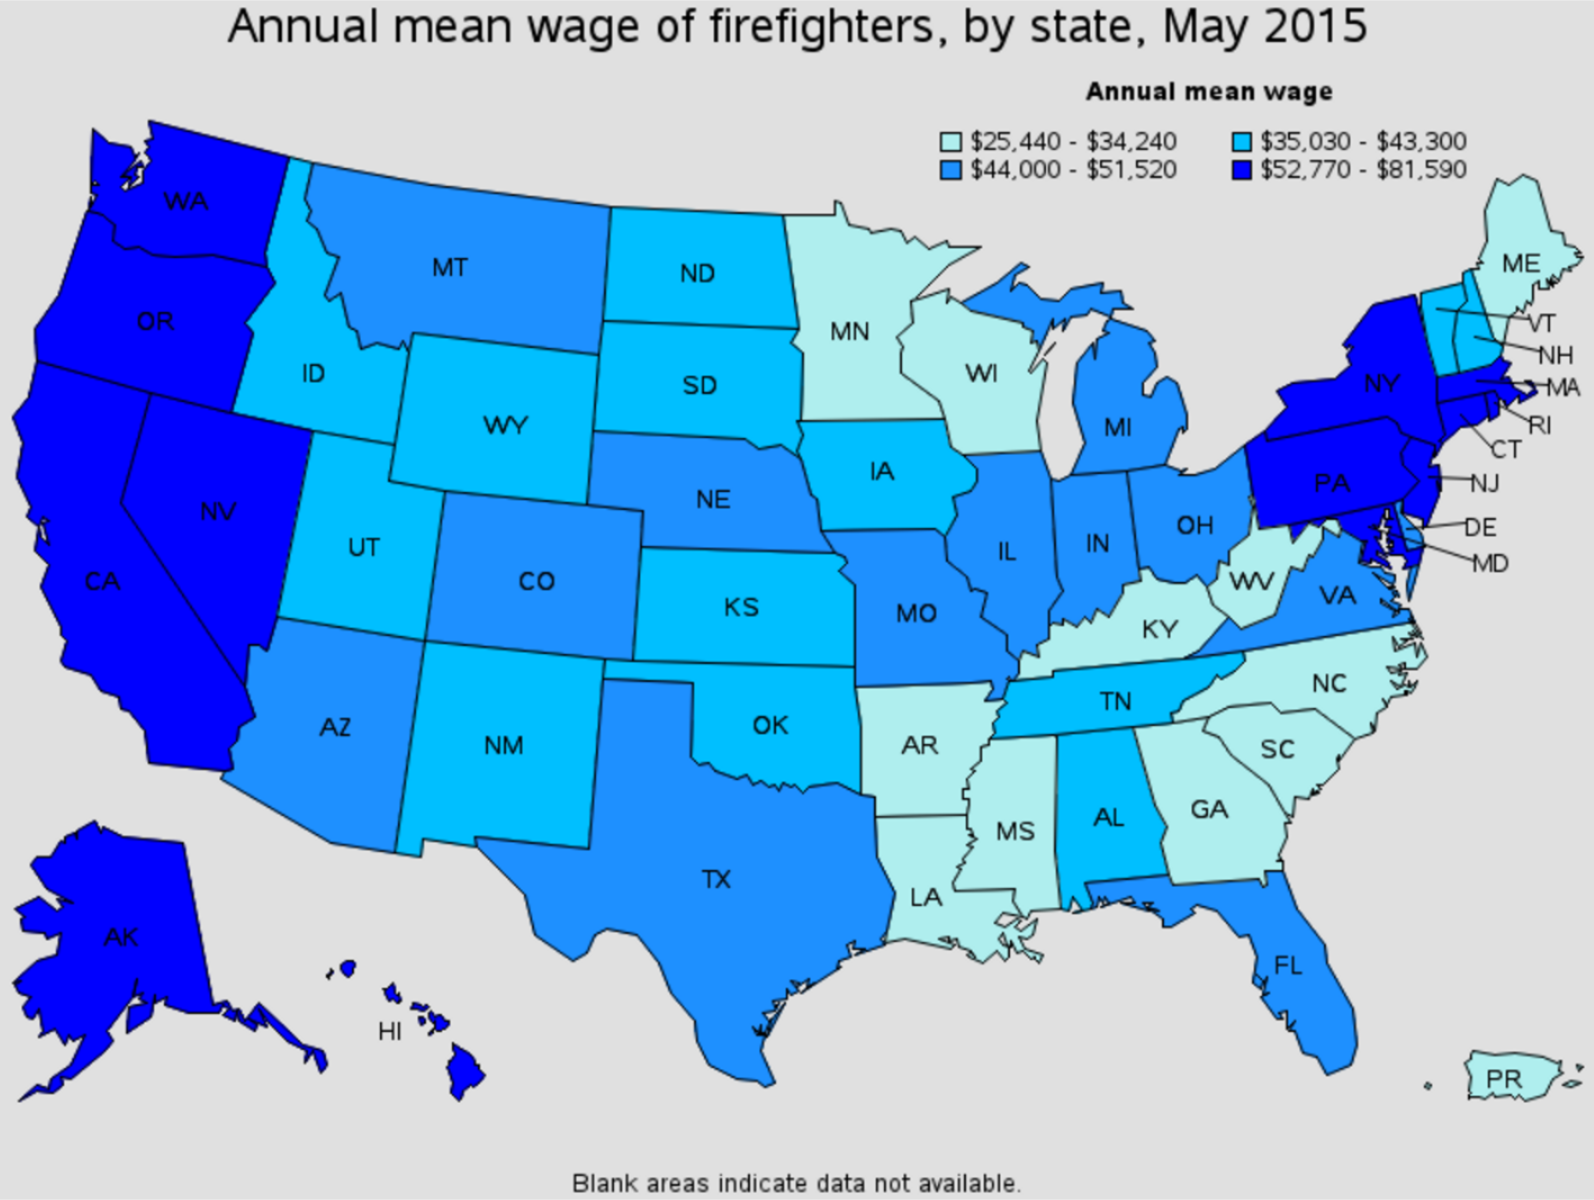 firefighter average salary by state Jerome Idaho